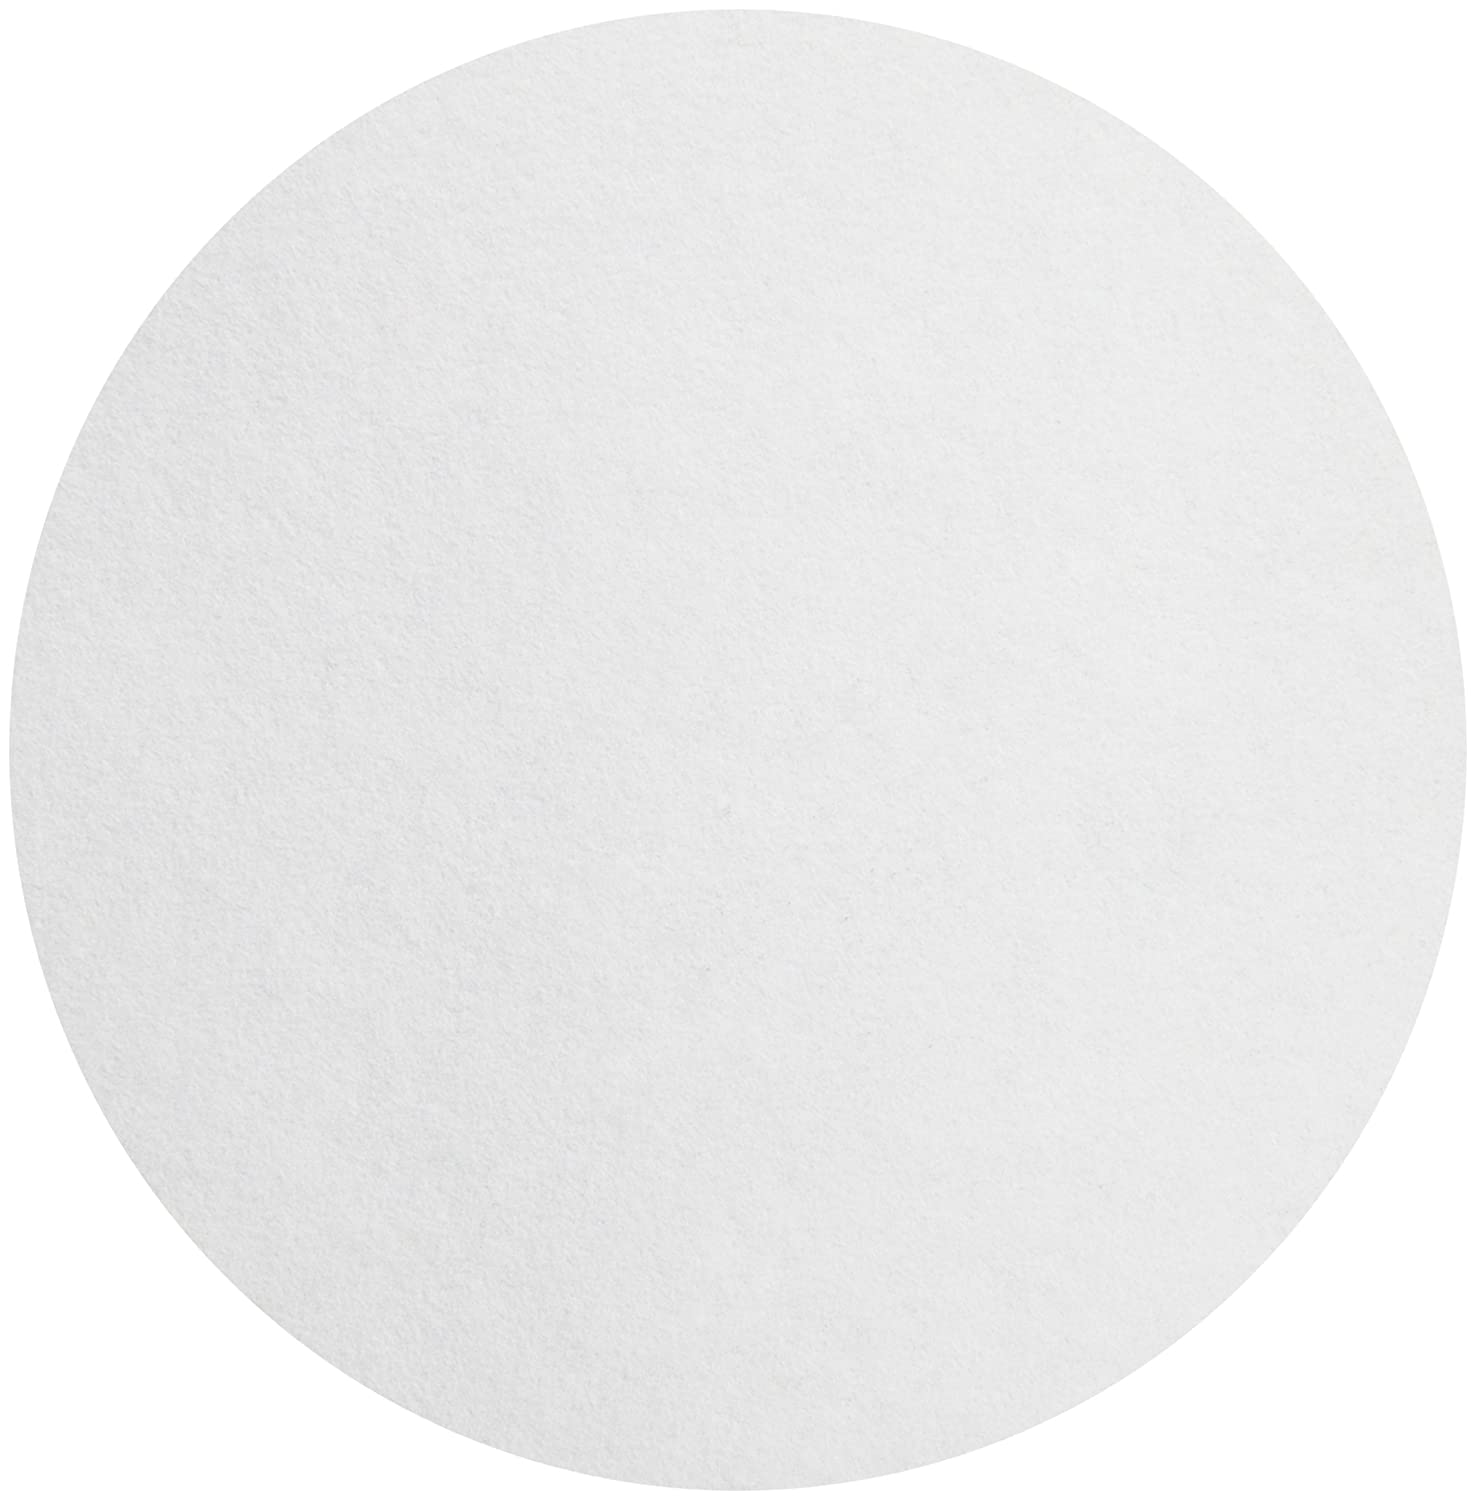 Whatman 1440090 Grade 40 Quantitative Filter Paper, Ash less, 0.007%, circle, 90 mm (Pack of 100) GE Healthcare F1220-4